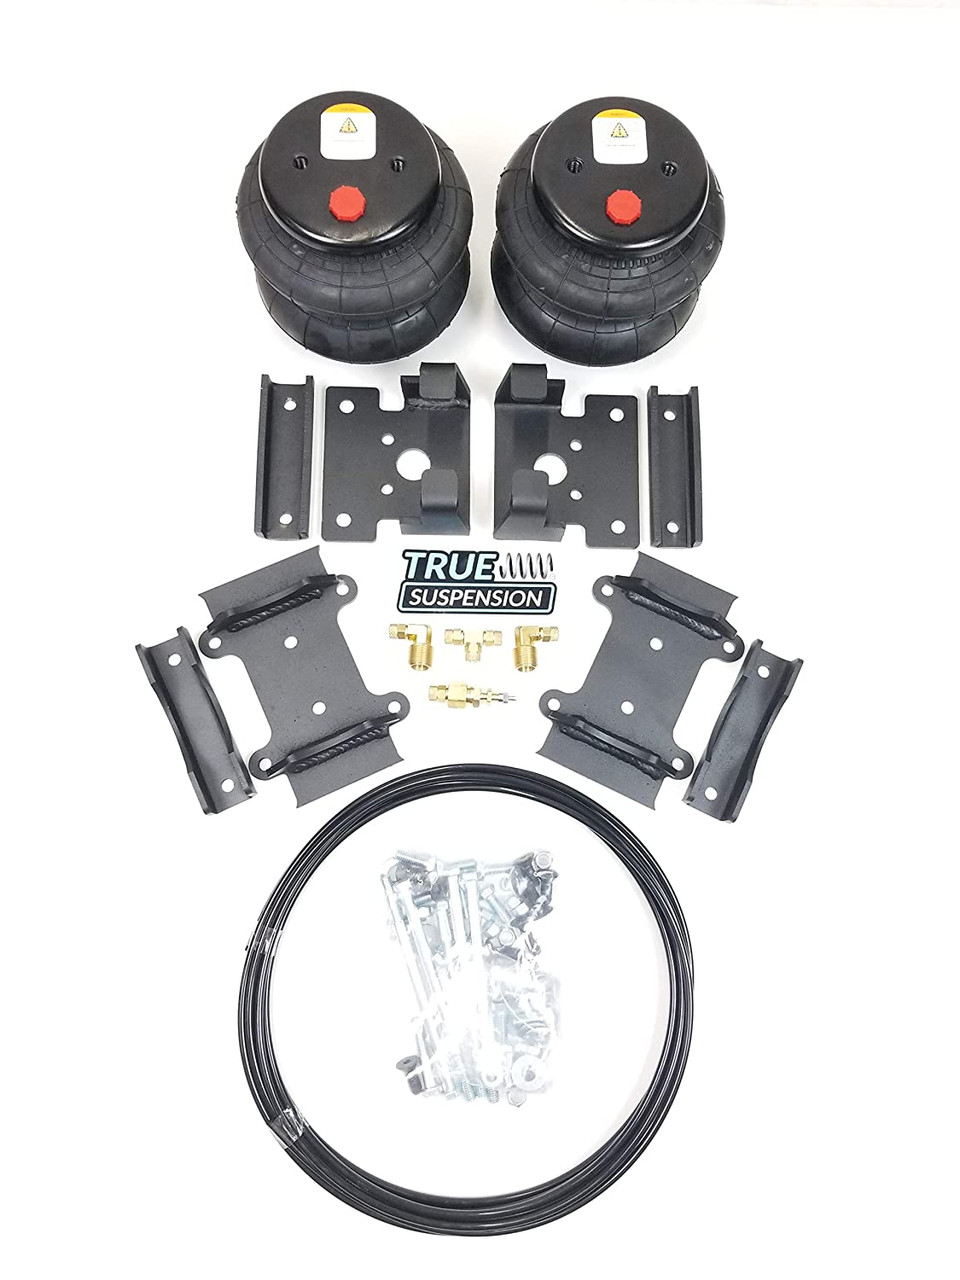 Compatible with Dodge 3500 4wd Pickup Truck 14-21 Towing Helper Assist Air Ride Suspension Kit